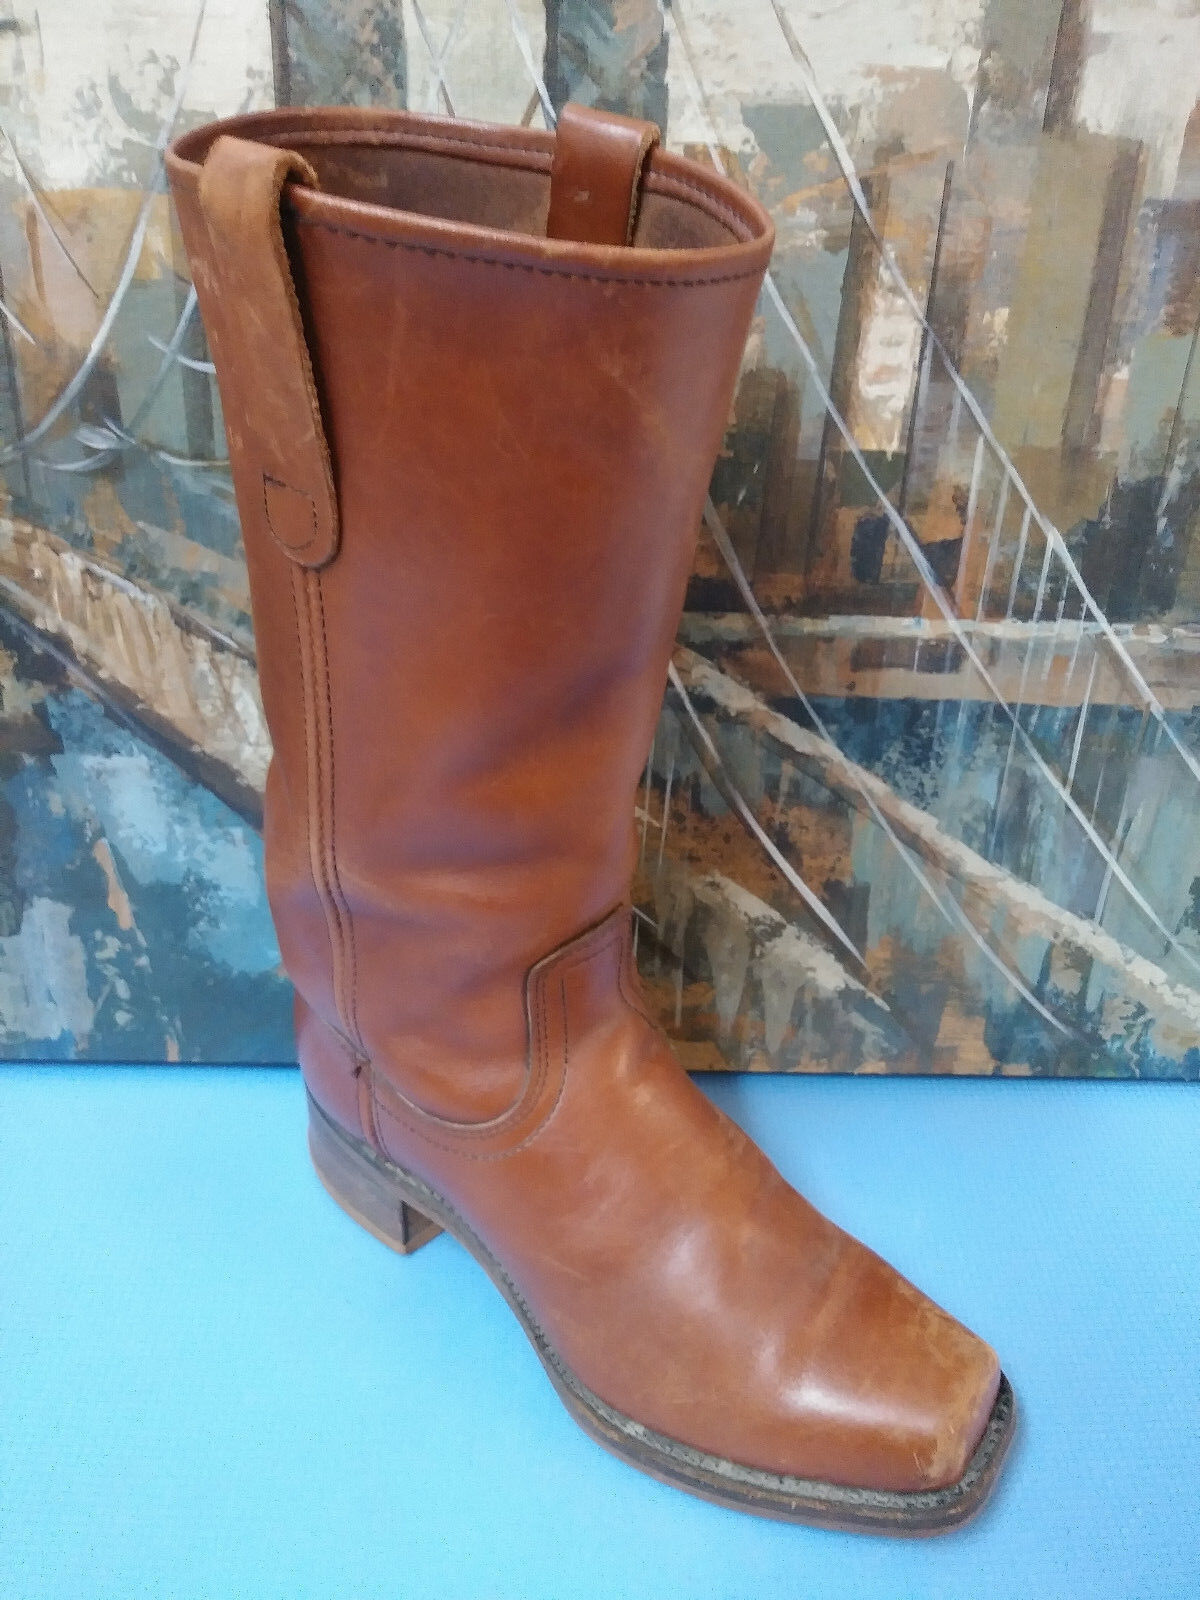 Men's VTG Motorcycle Western Square Toe Boots Size 9